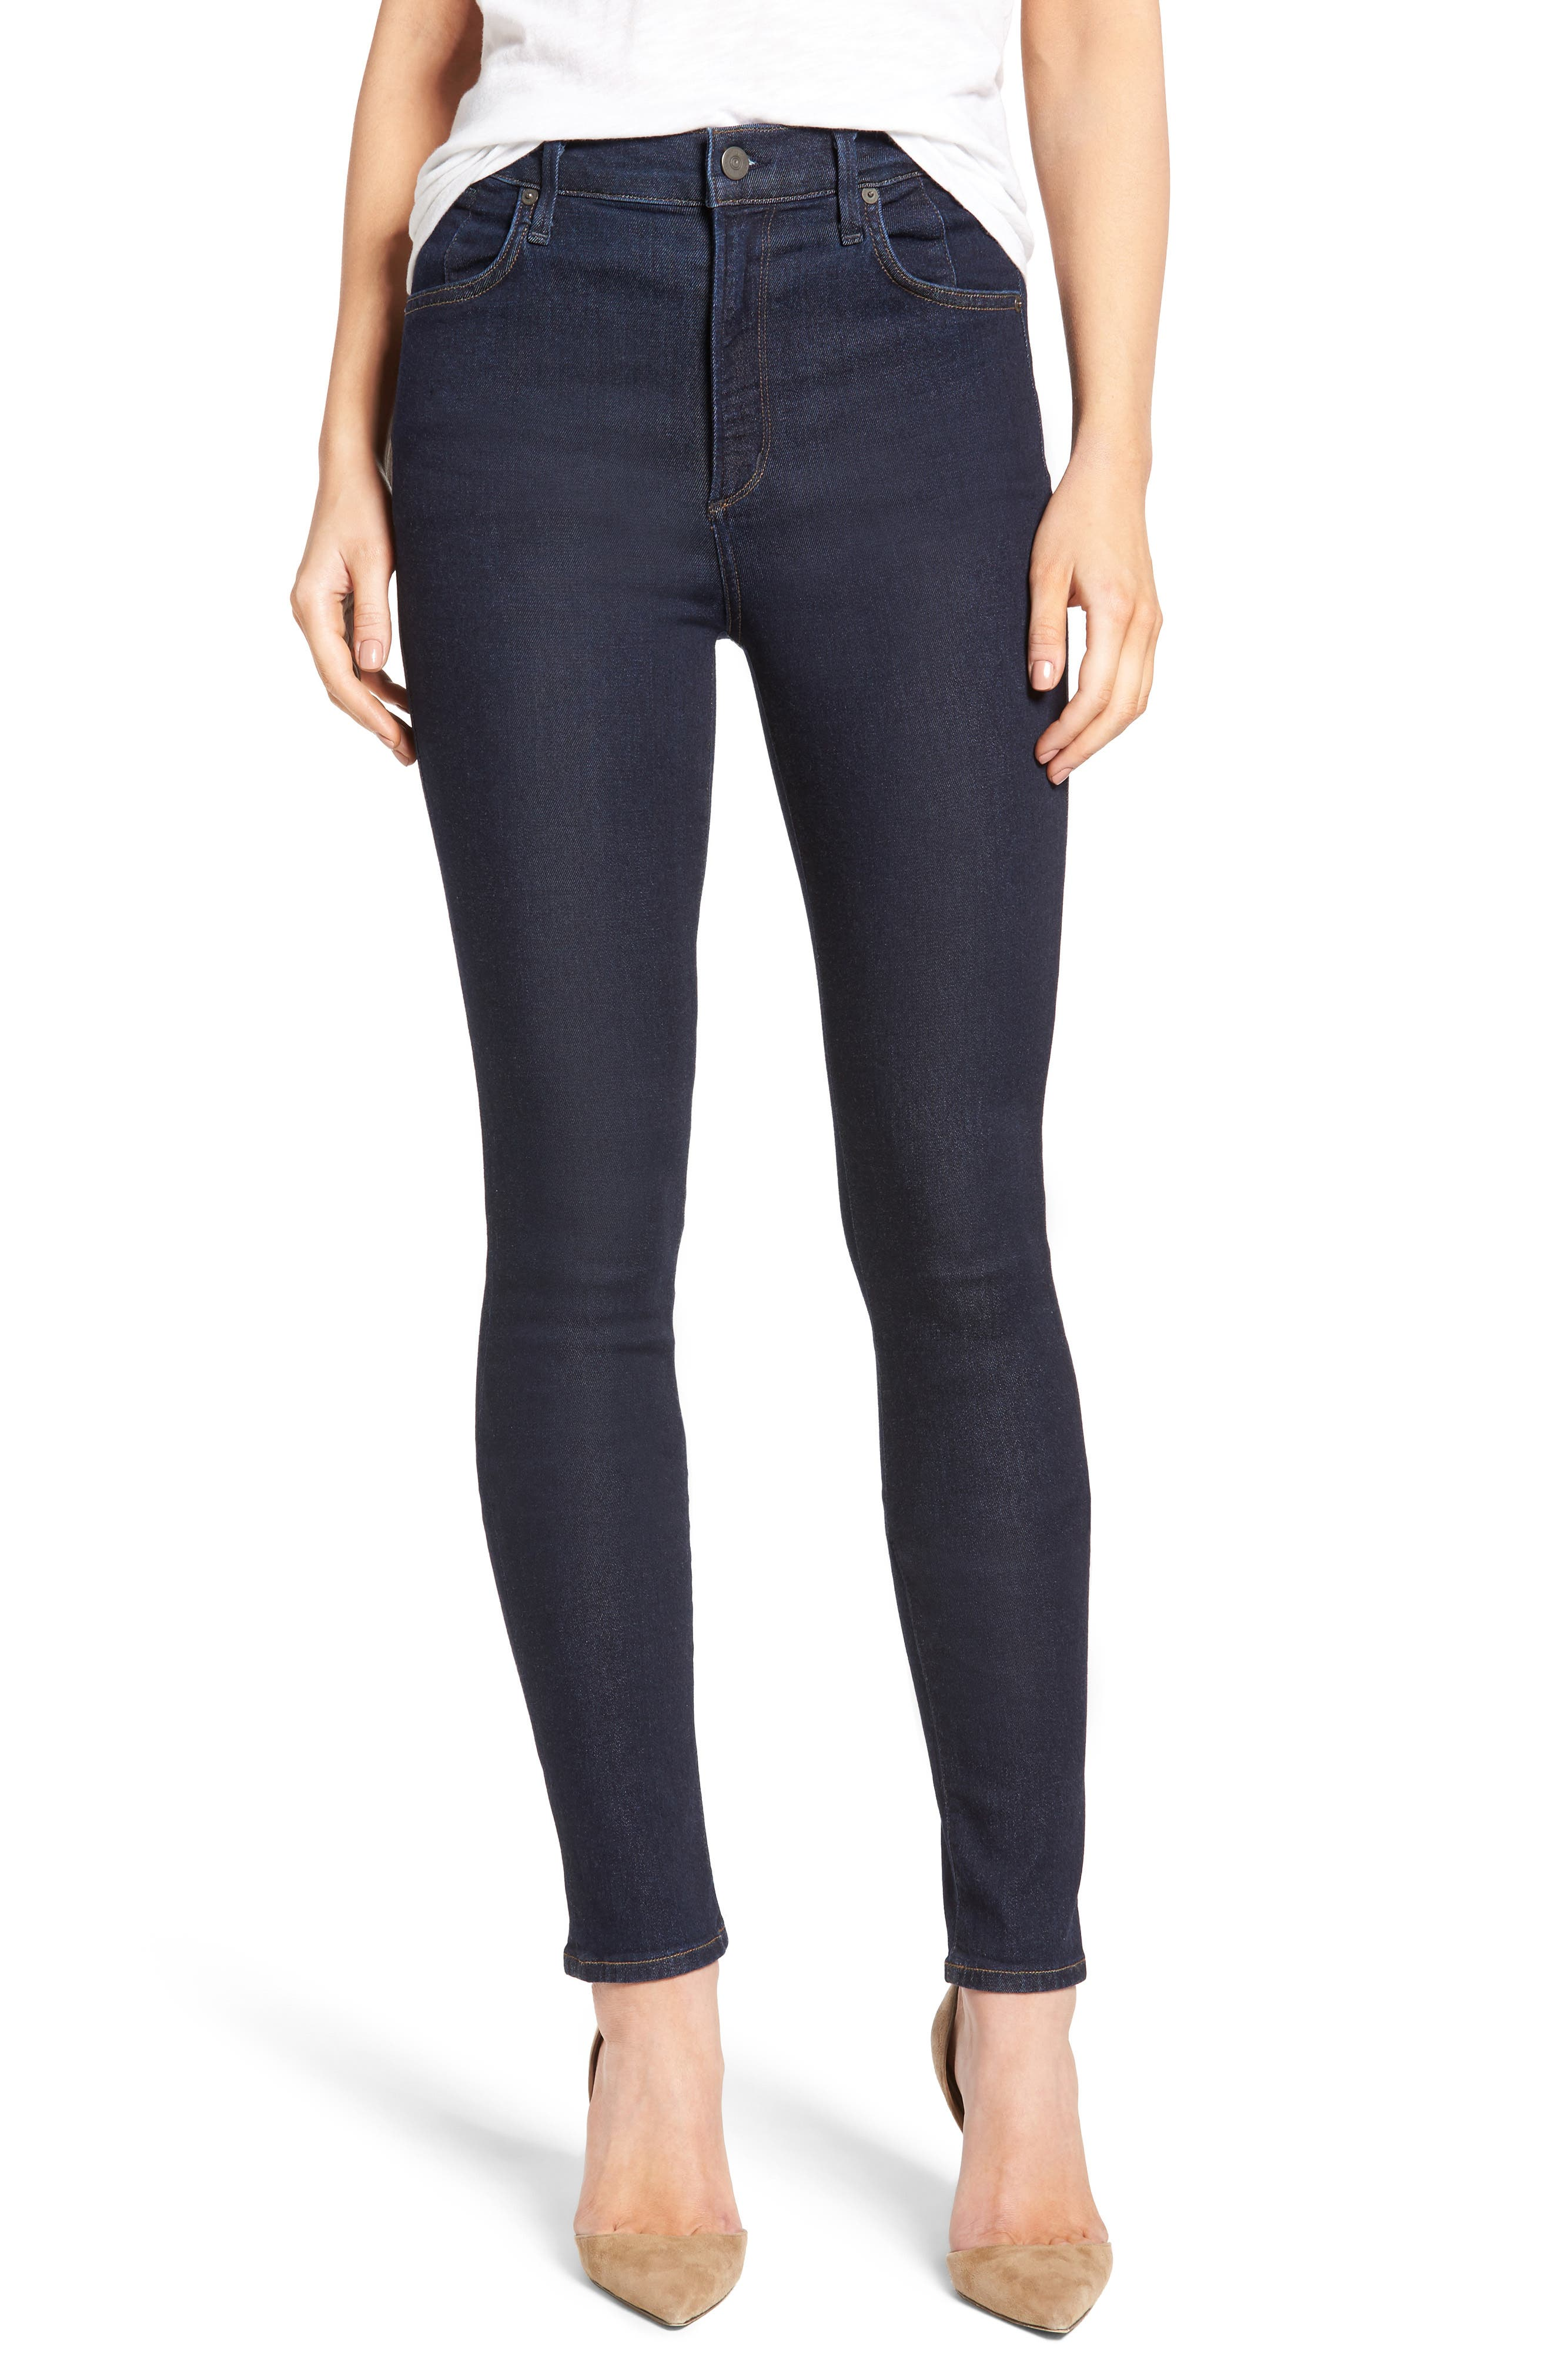 Carlie High Waist Skinny Jeans,                         Main,                         color, OZONE RINSE